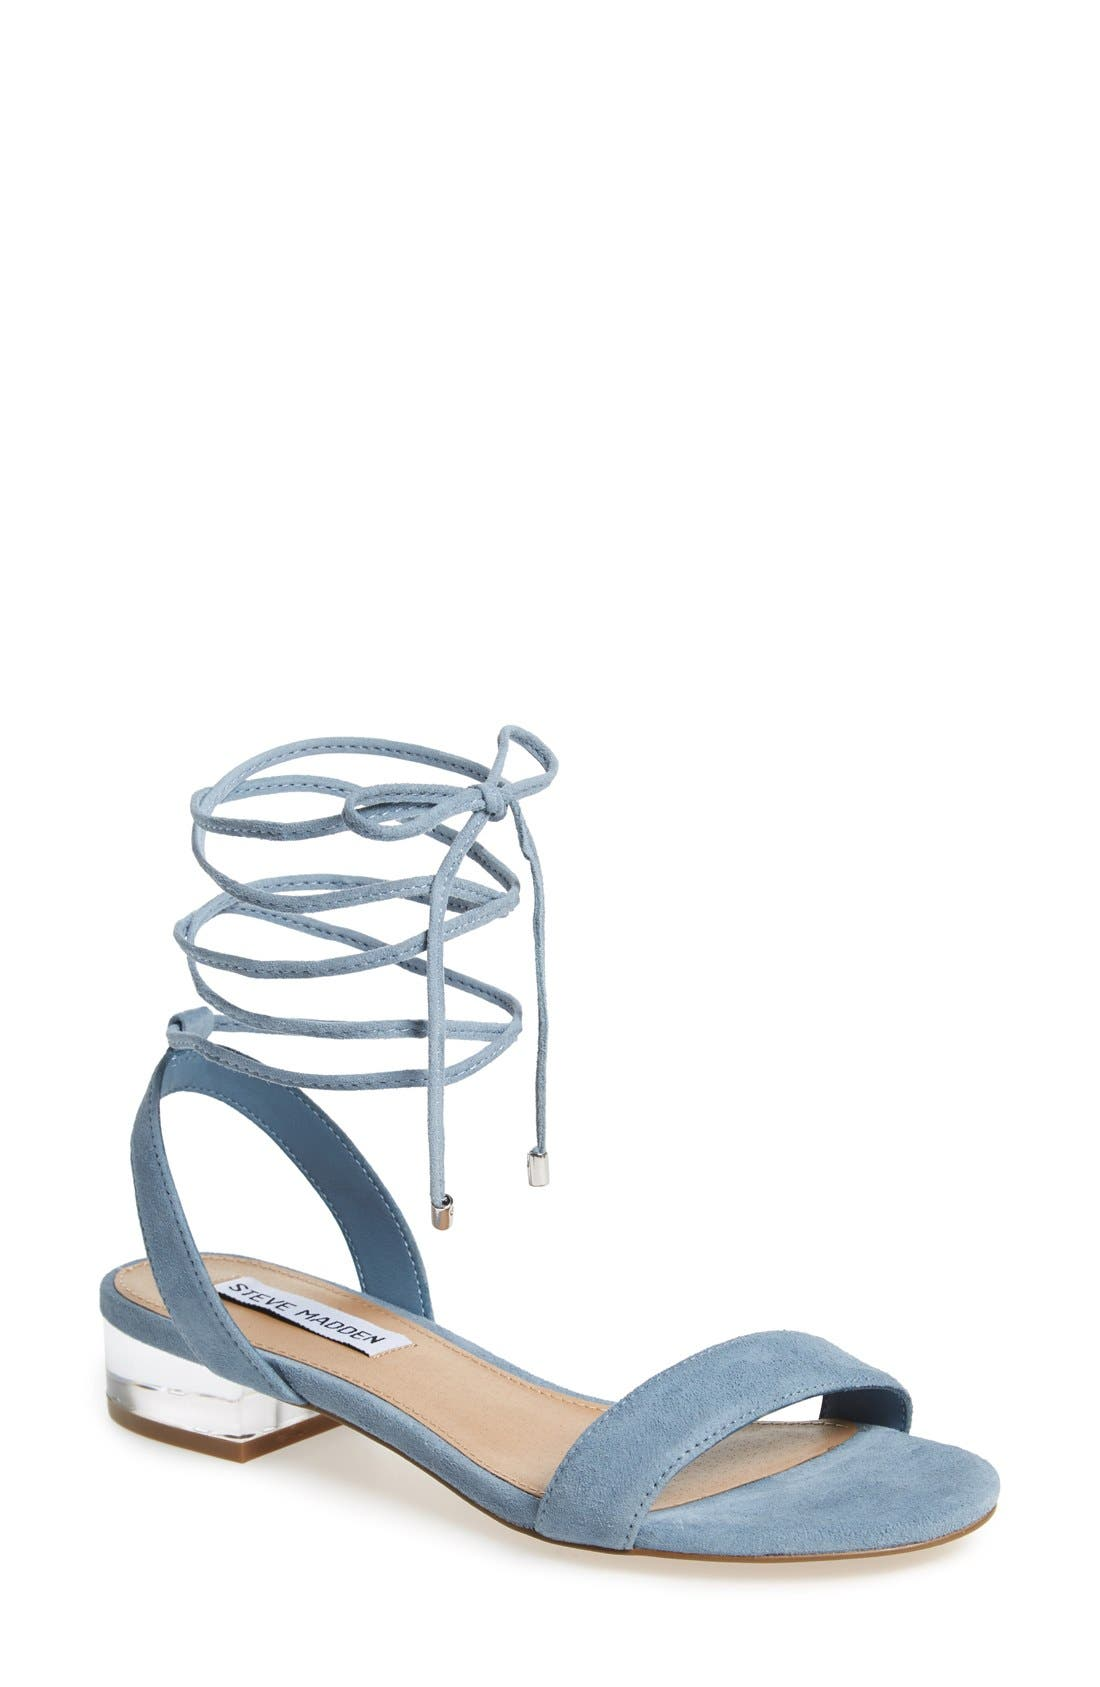 Main Image - Steve Madden 'Carolyn' Lace-Up Sandal (Women)